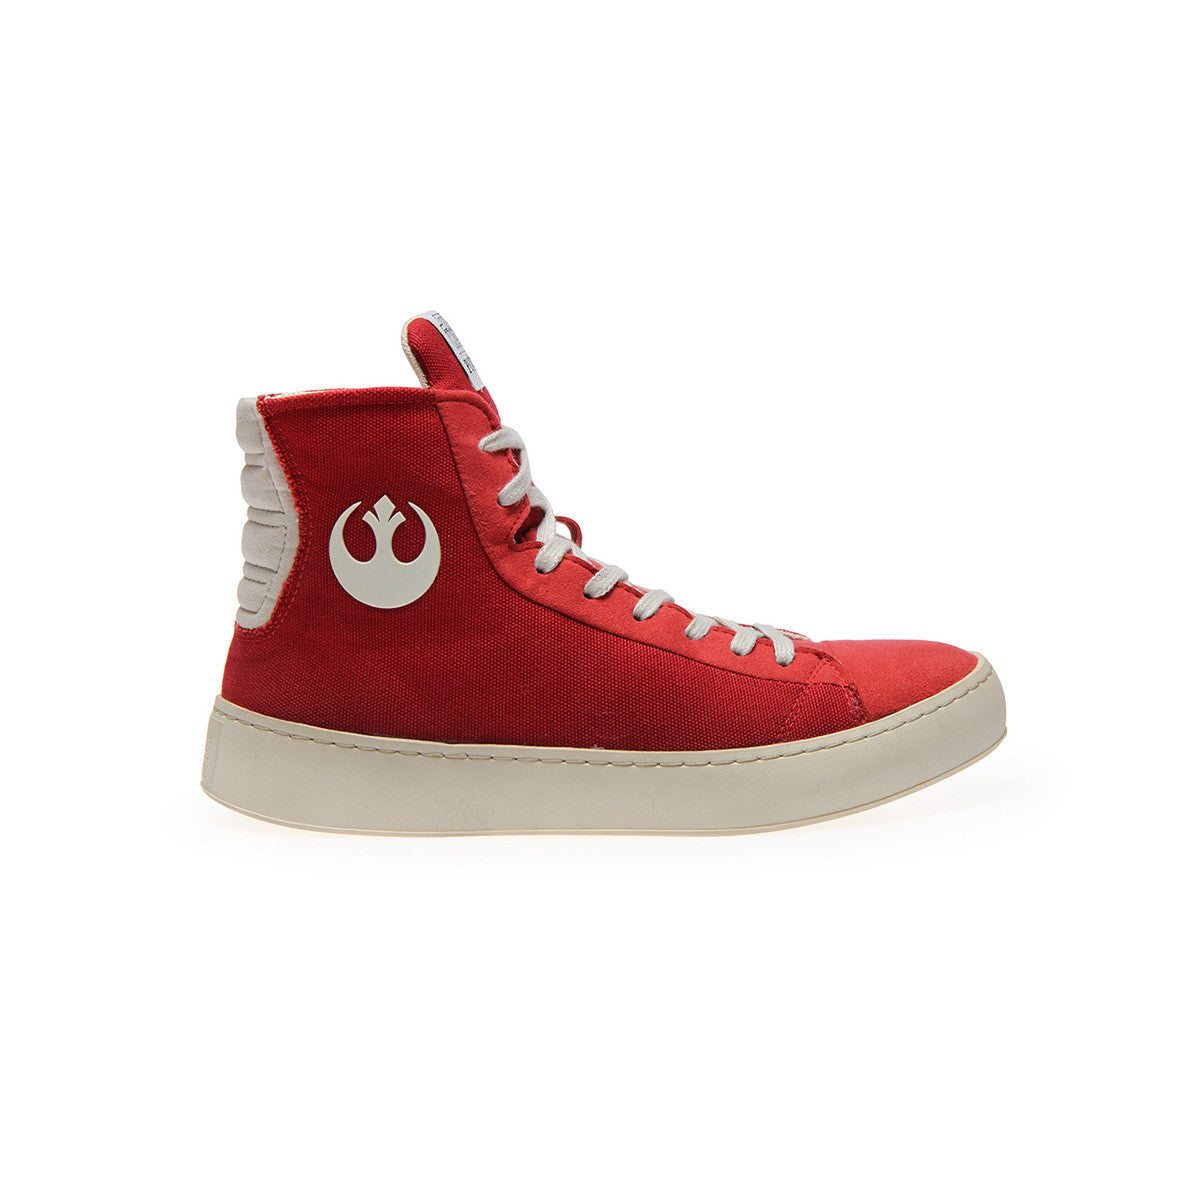 Star Wars Sneakers >> Official Star Wars Womens Resistance Red High Top Sneaker